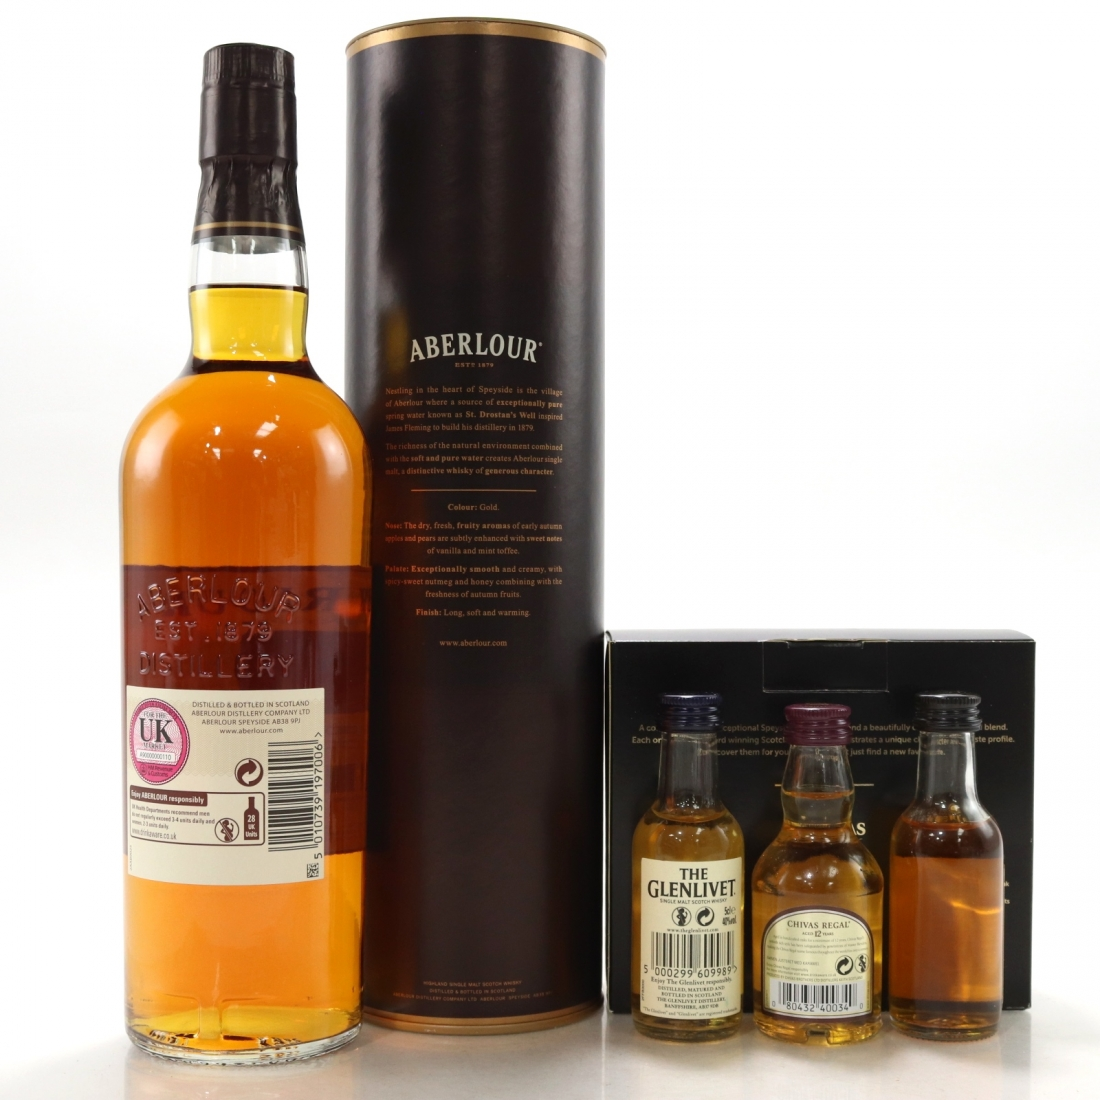 Aberlour 10 Year Old / including Classic Scotch Whisky Miniature Collection 3 x 5cl